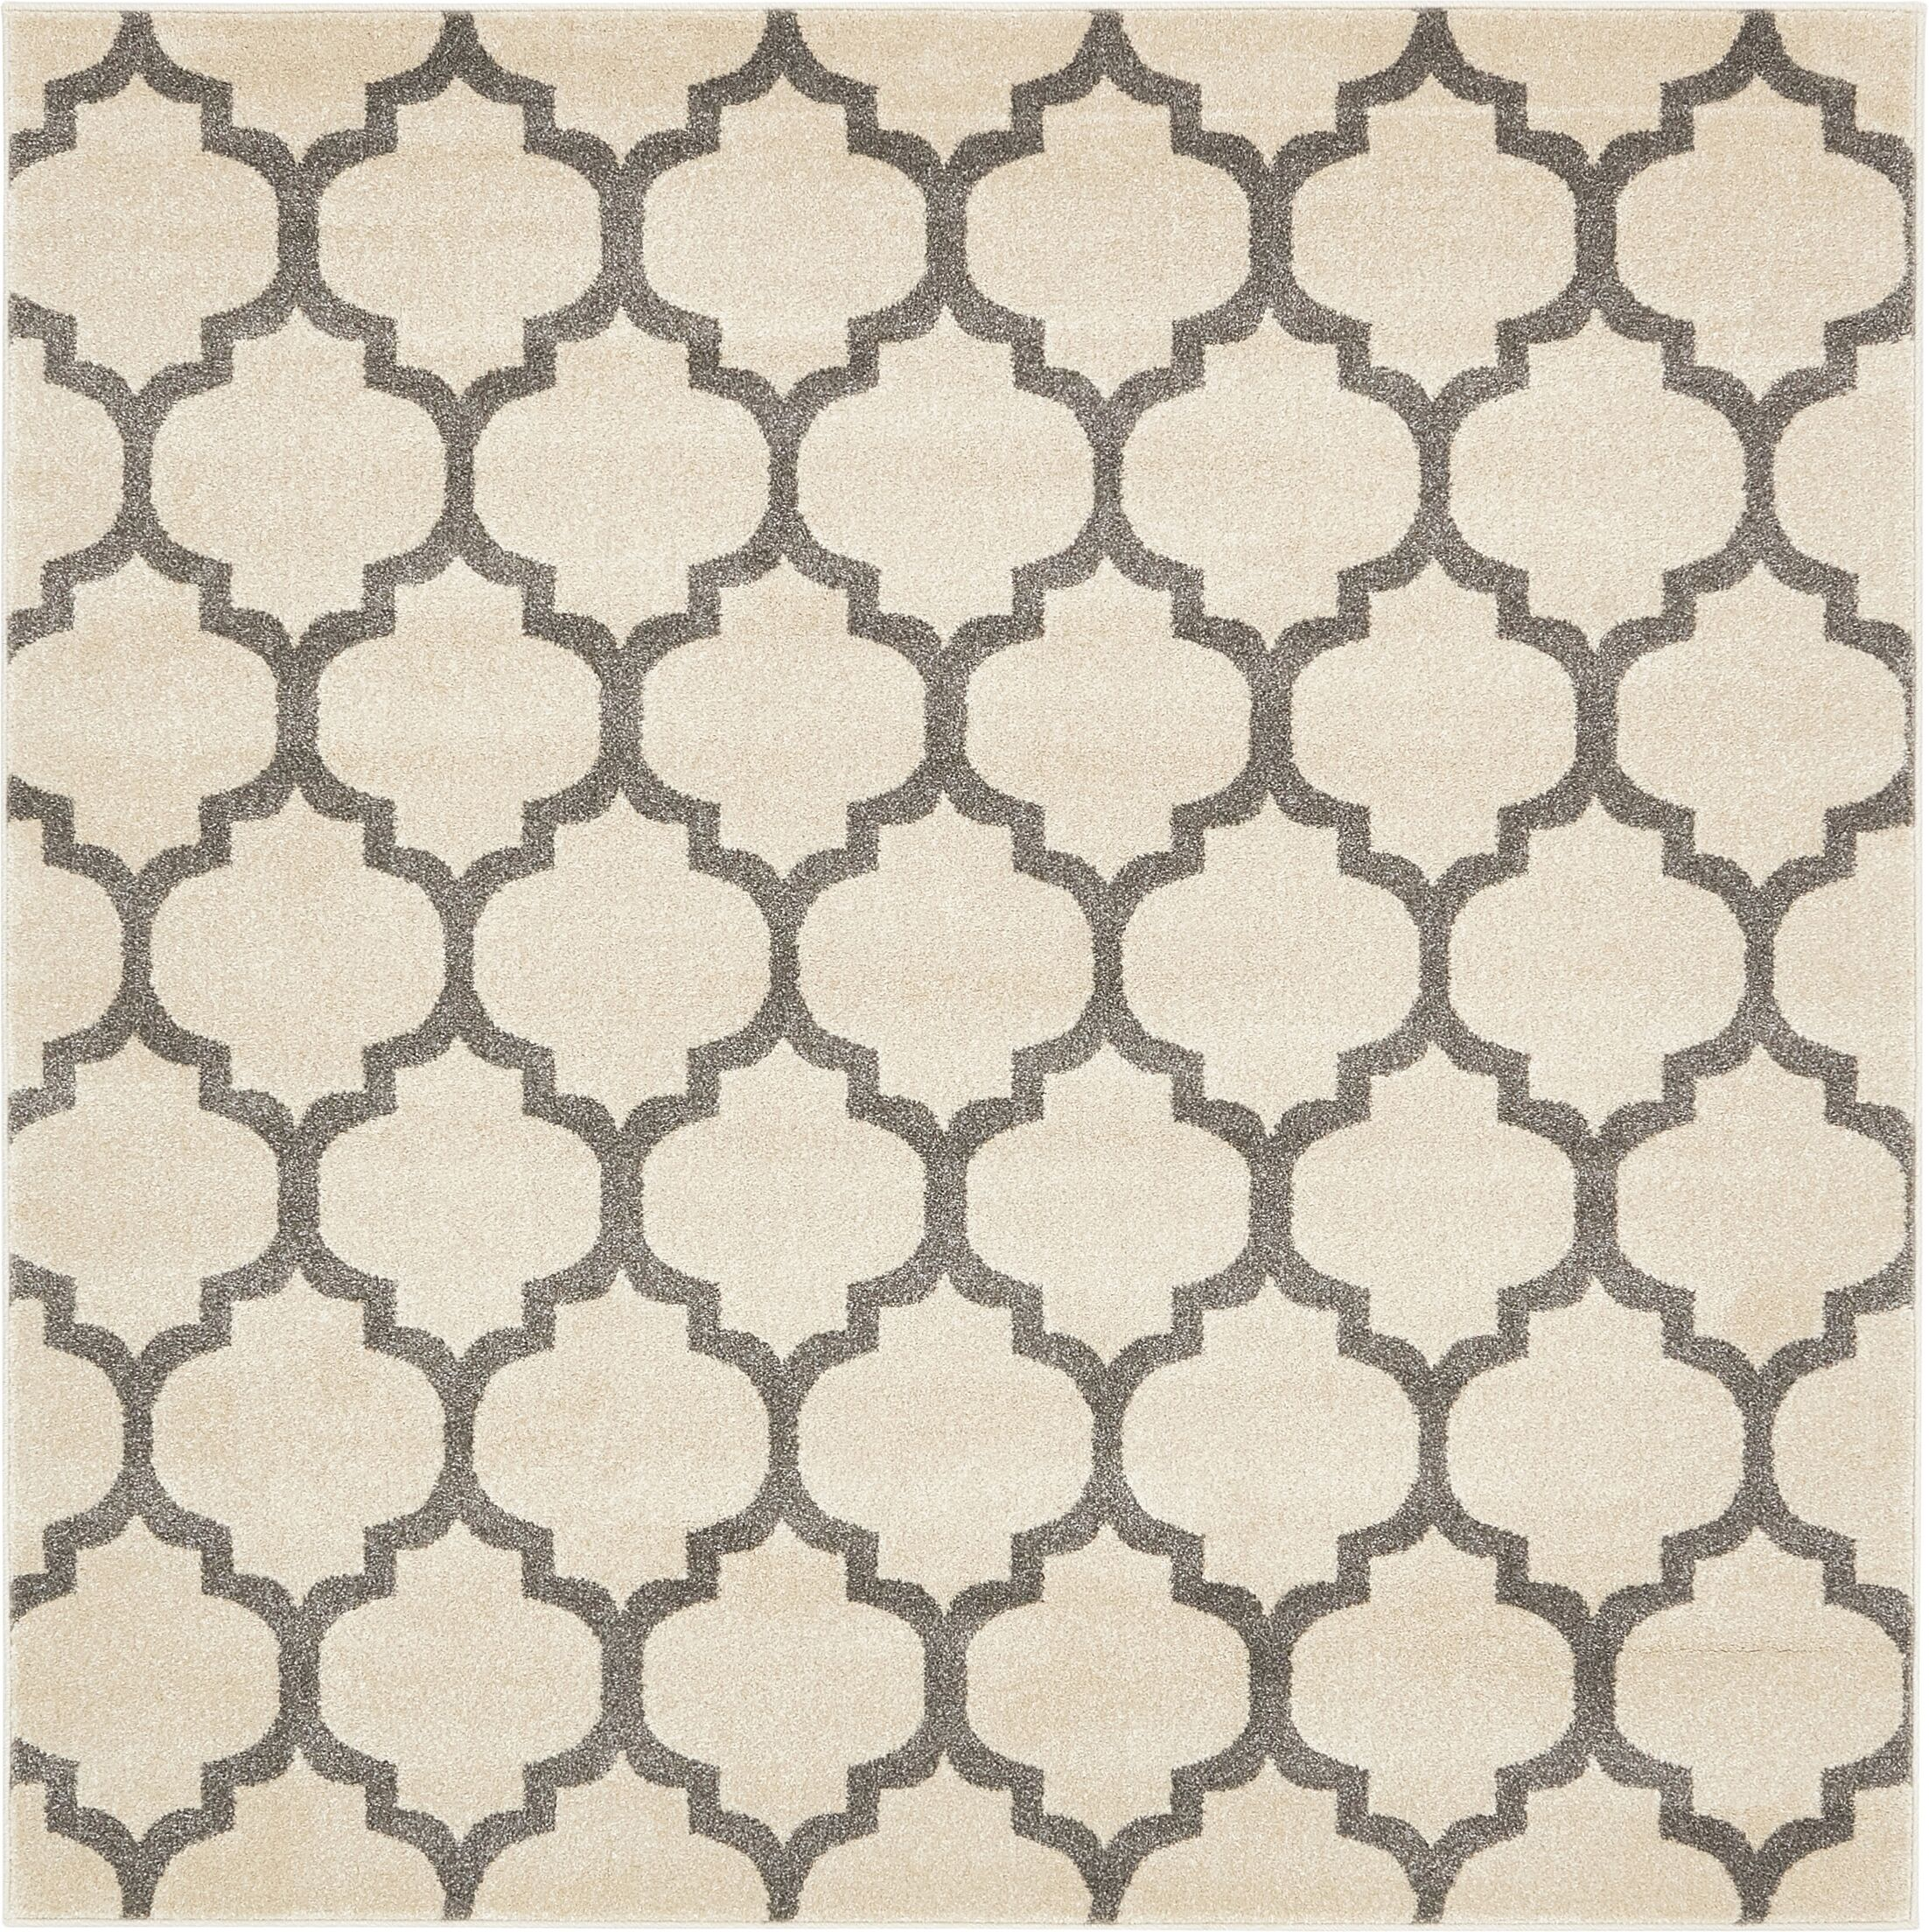 Moore Beige Area Rug Rug Size: Square 6'